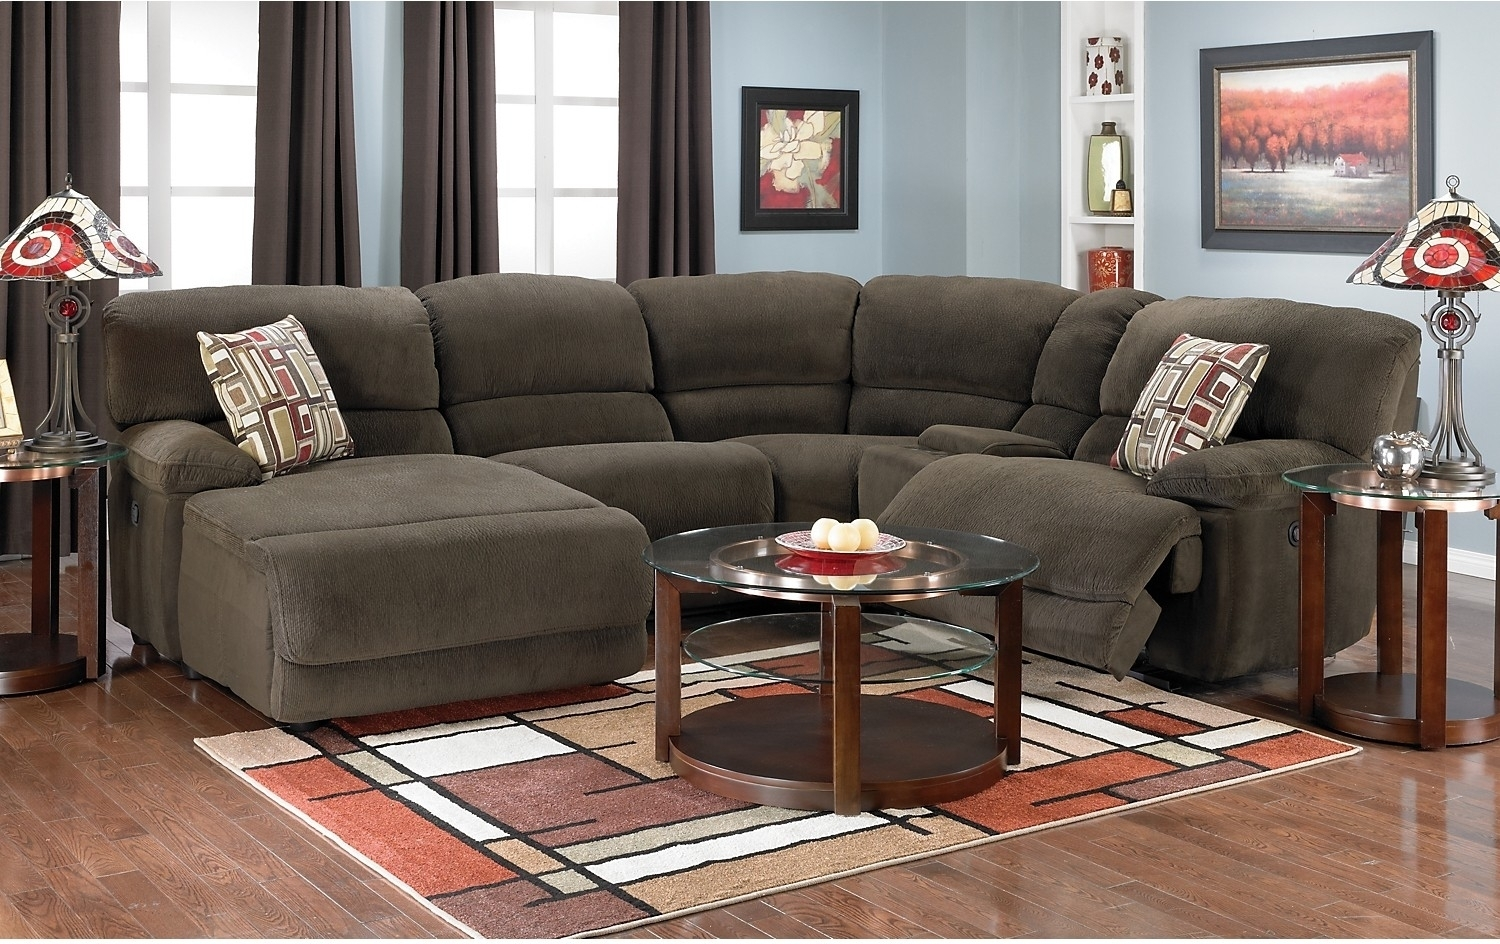 Devon Devon 5 Piece Sectional With Chaise And Sleeper Sofa Within Sectional Sofas At The Brick (Image 4 of 10)